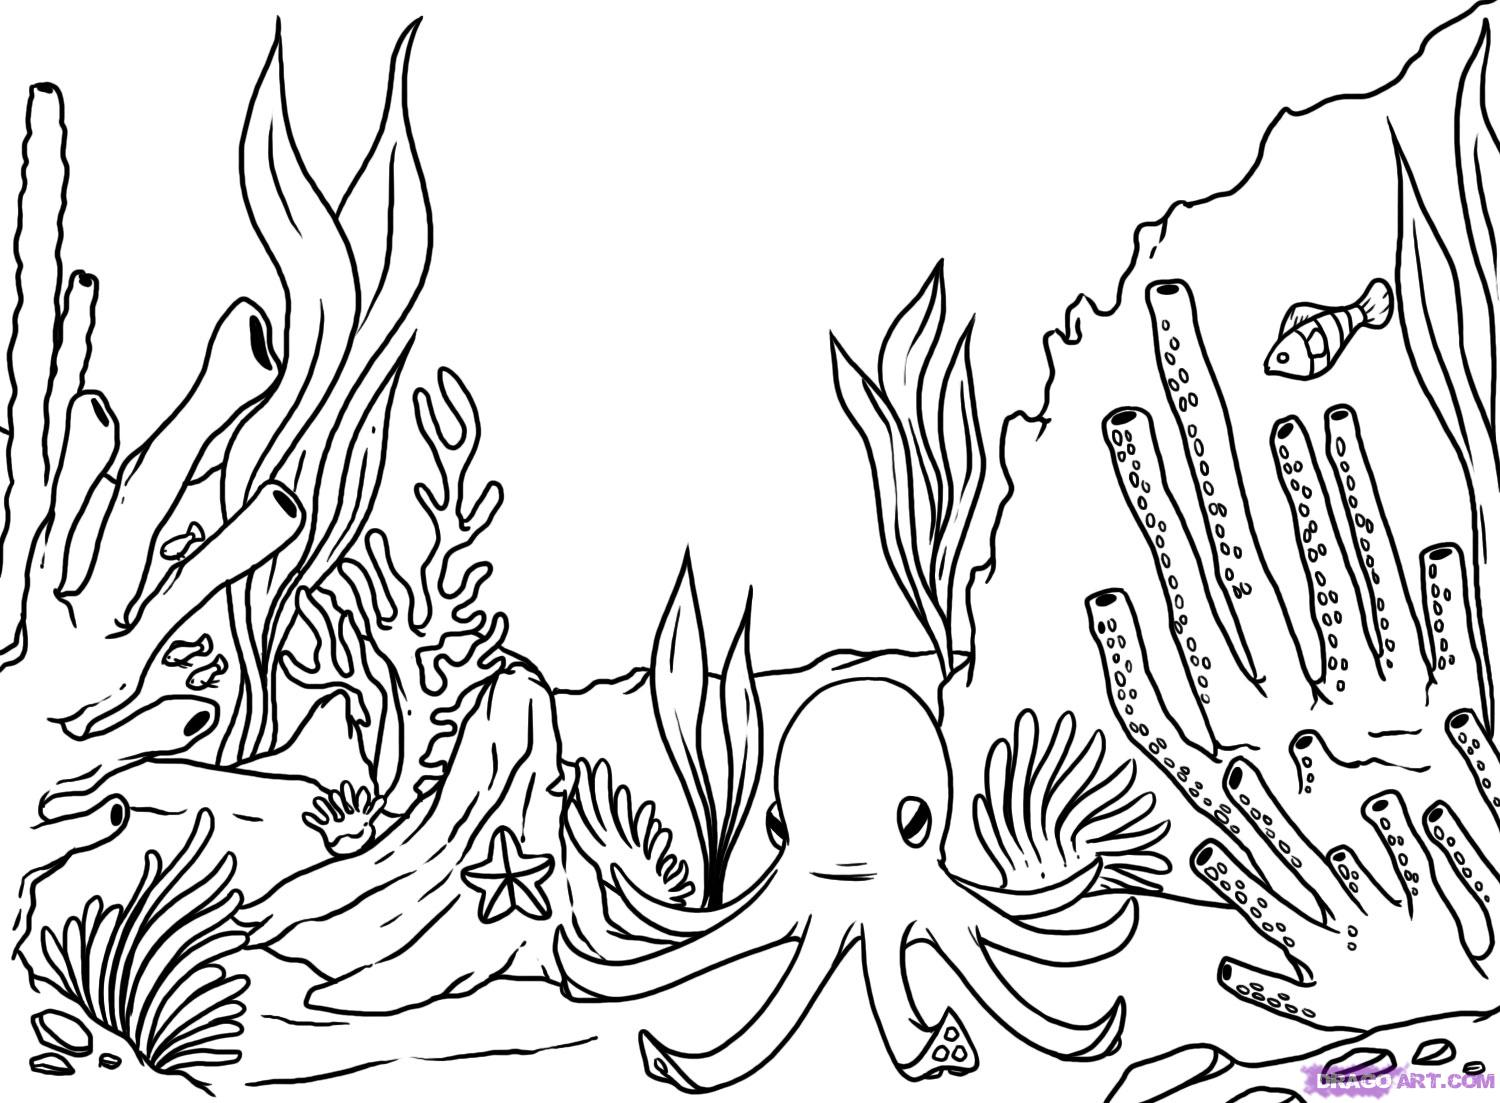 Great Barrier Reef coloring #20, Download drawings